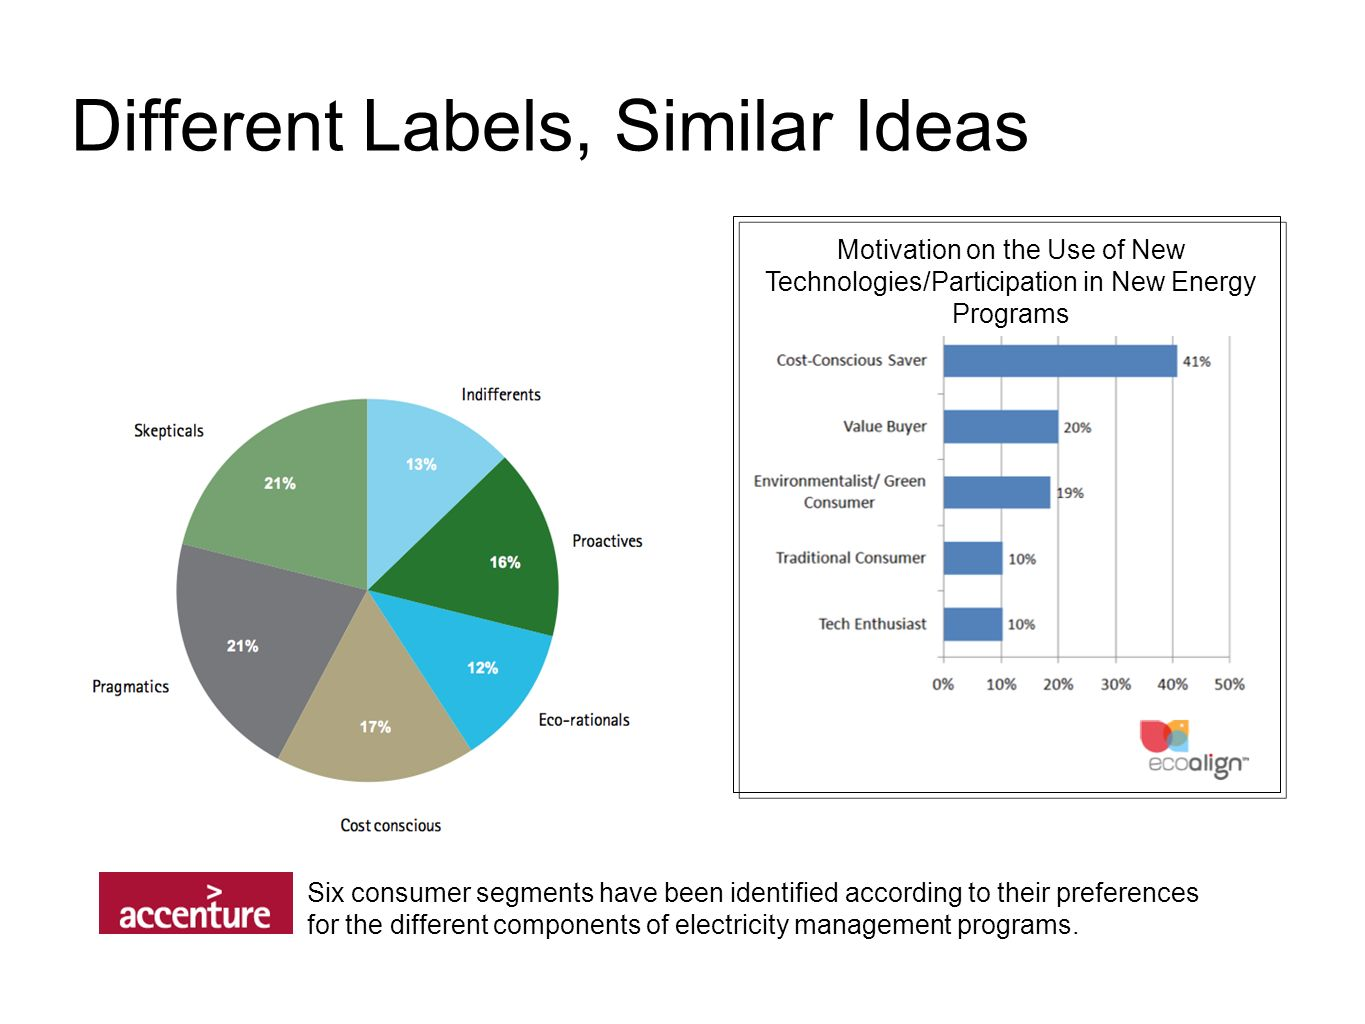 Different Labels, Similar Ideas Six consumer segments have been identified according to their preferences for the different components of electricity management programs.